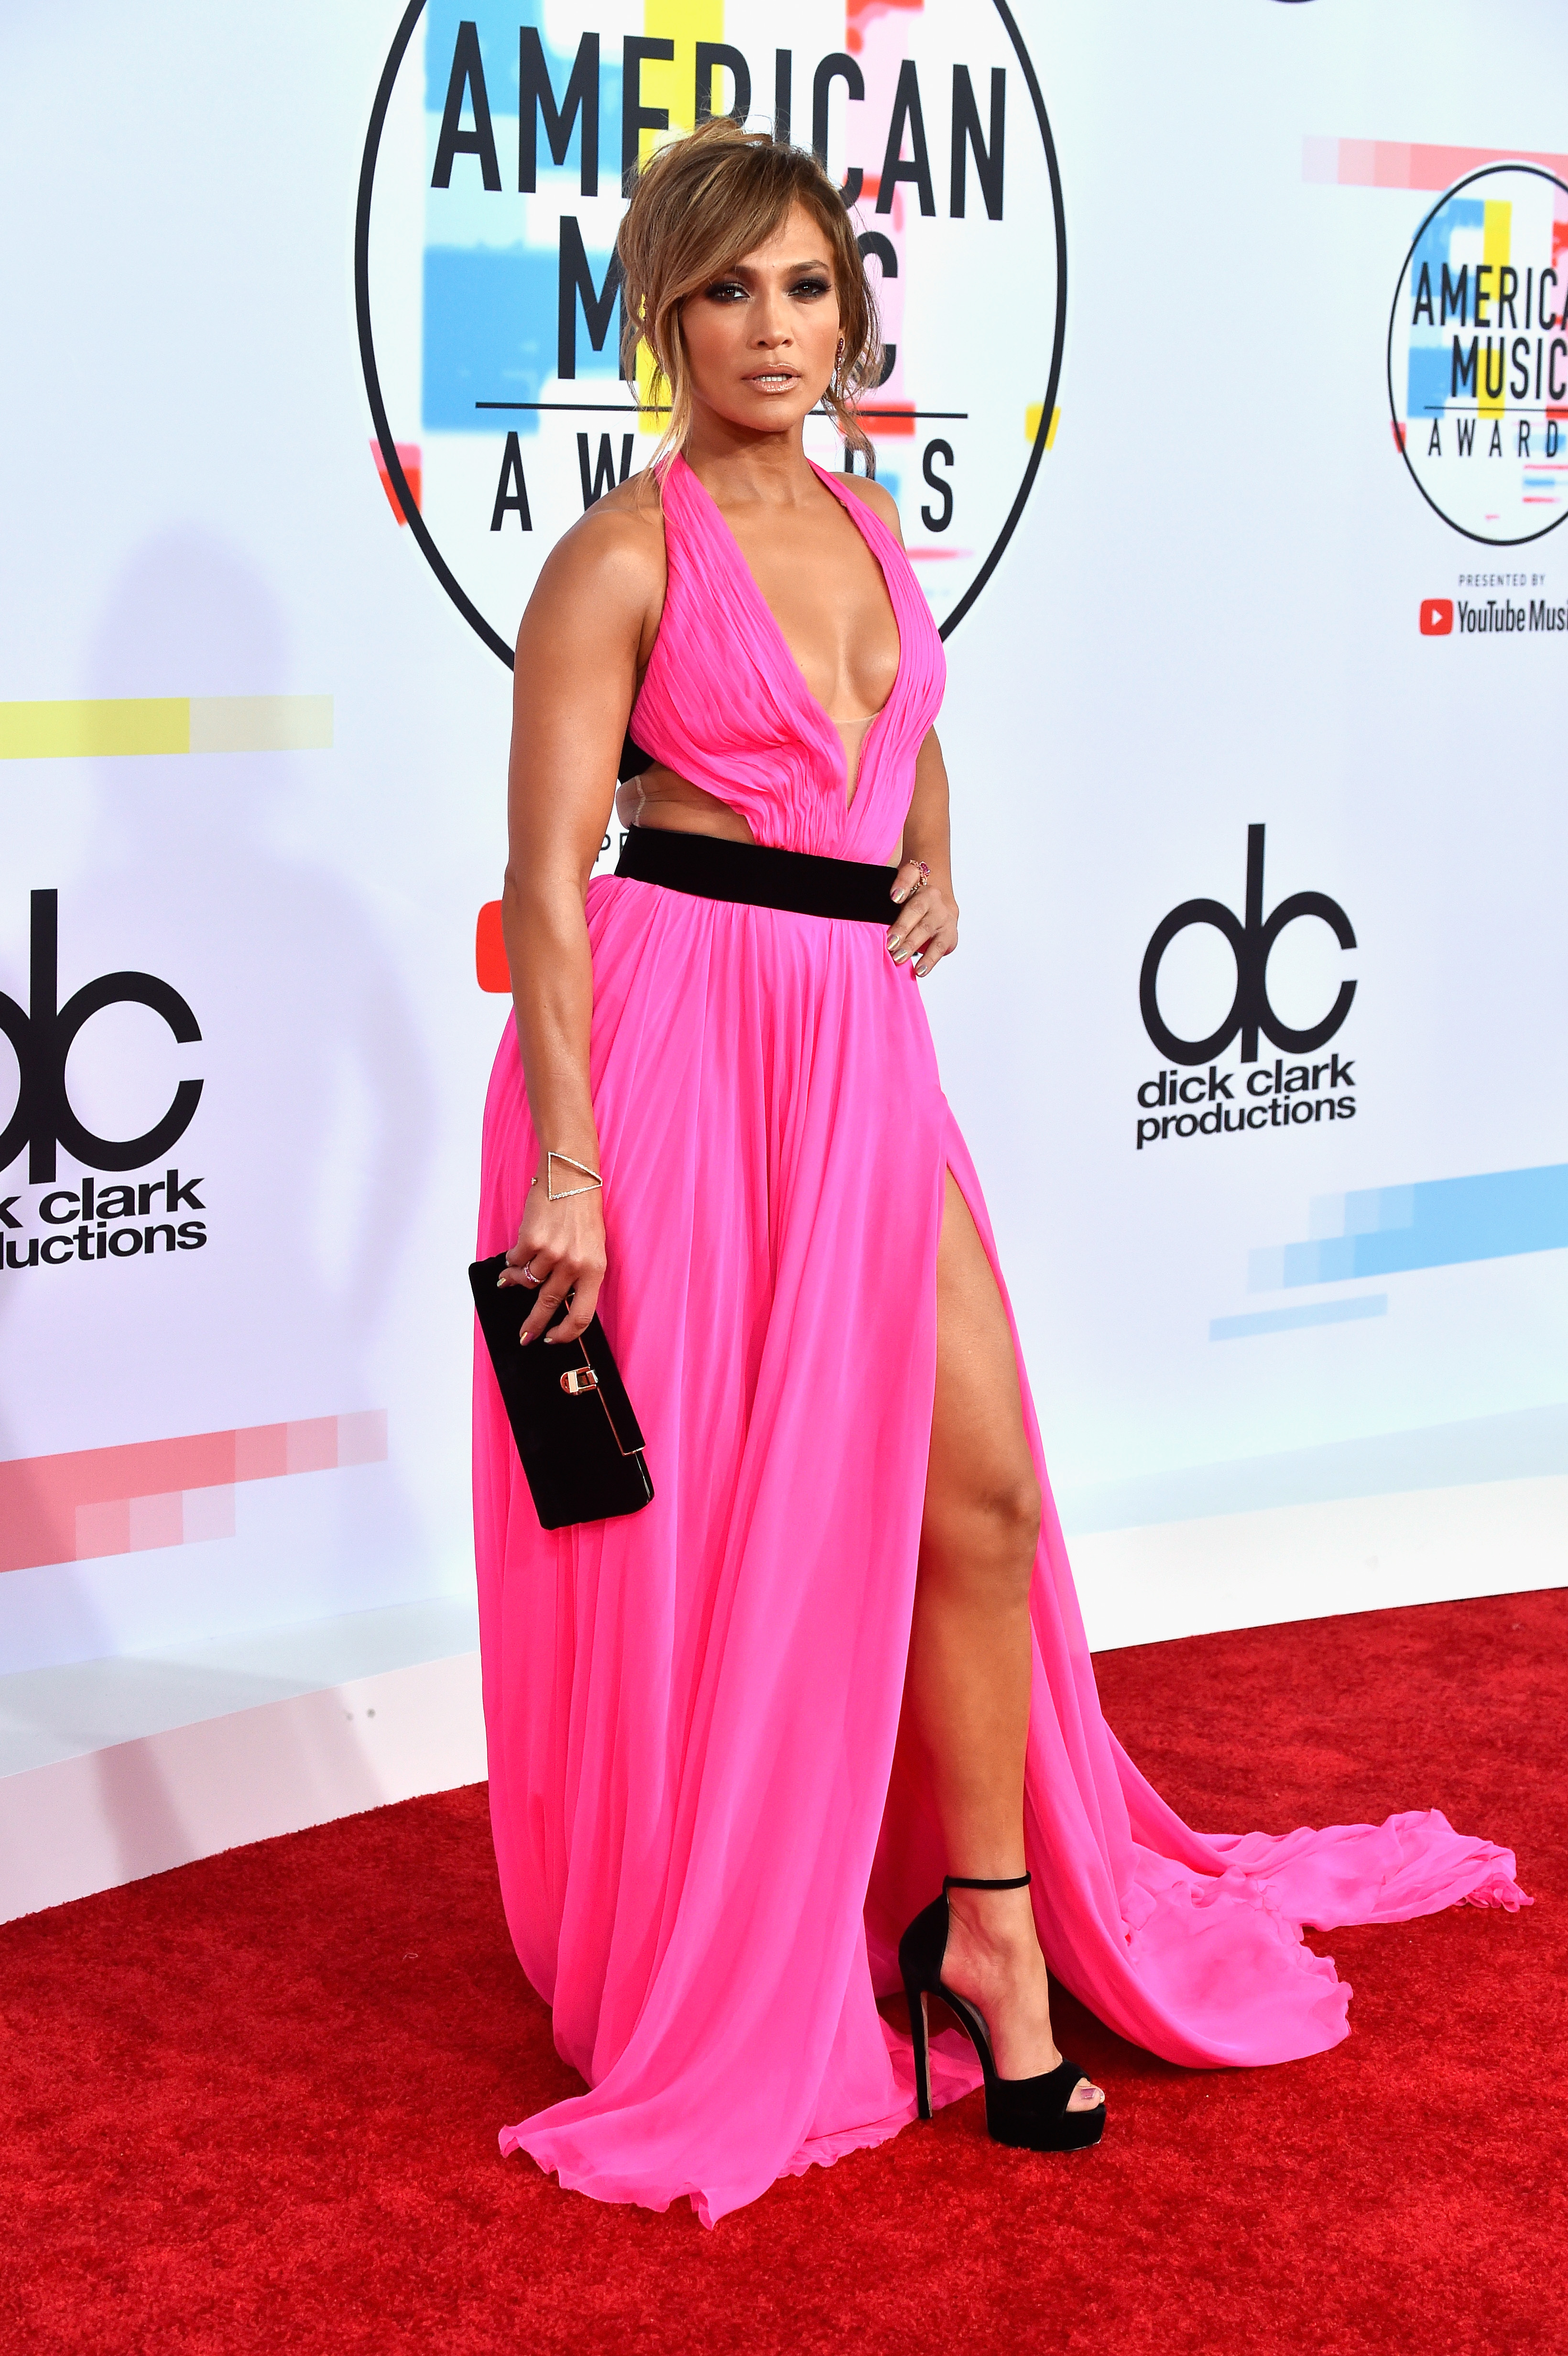 jennifer lopez is a total smokeshow in a hot pink dress at